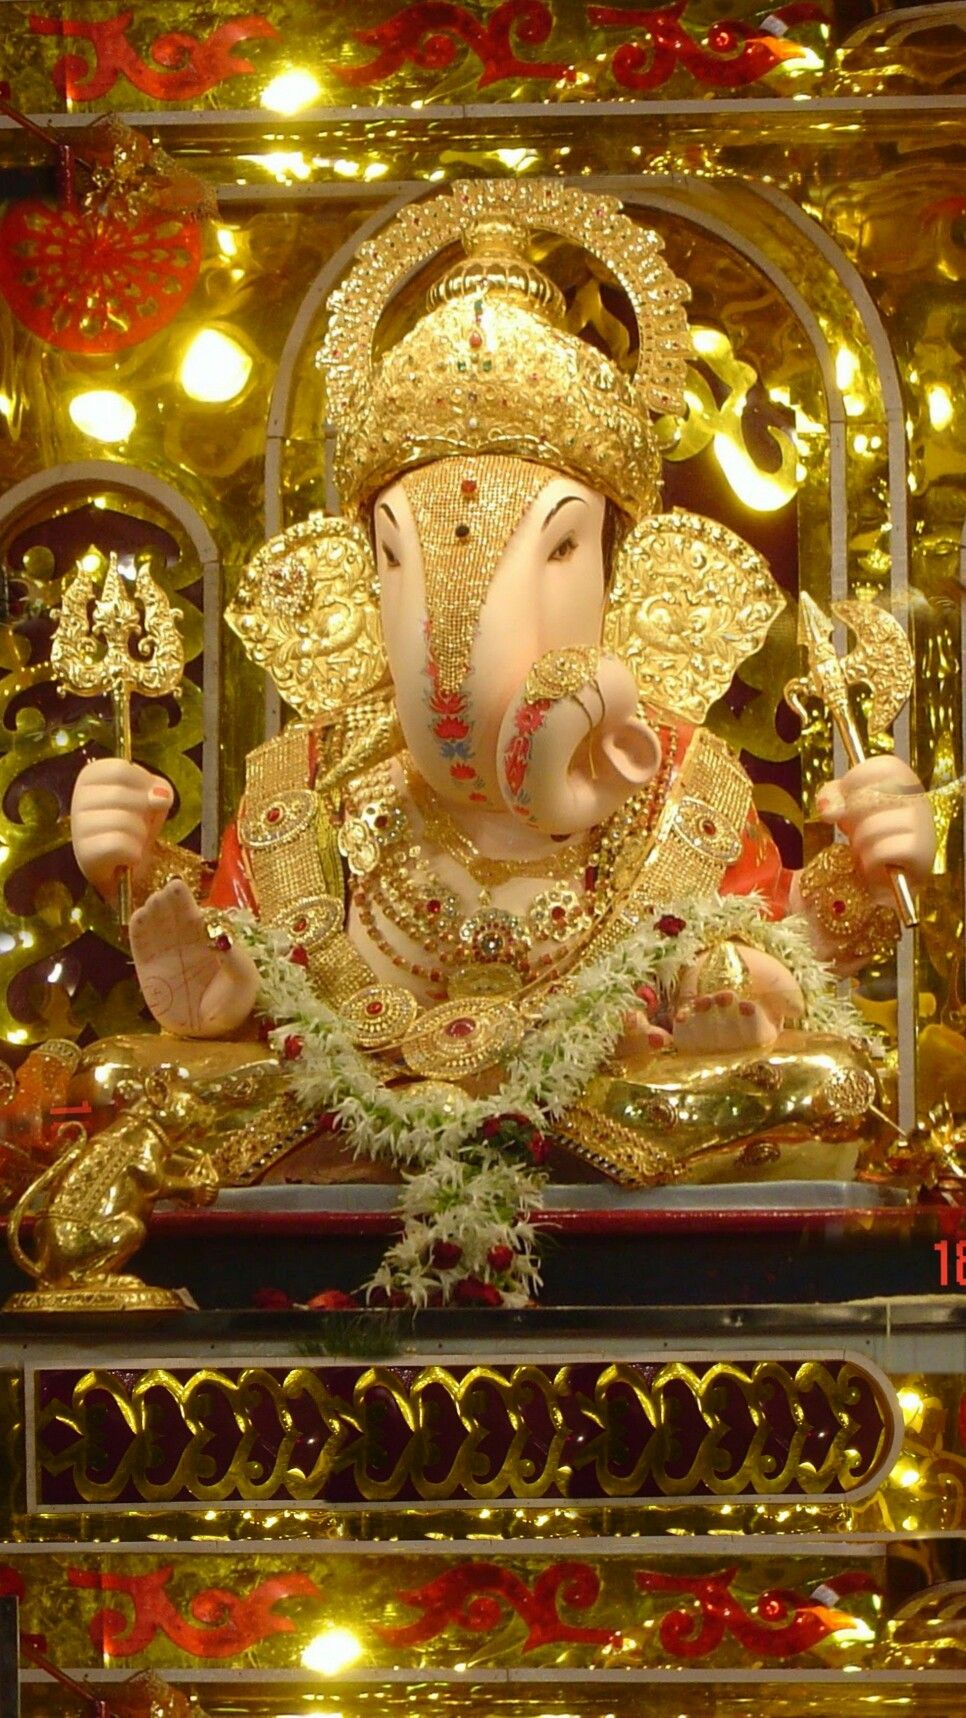 Ganesh Ganpati Full Hd Picture For Mobile Only Ganesh Images Happy Ganesh Chaturthi Images Happy Ganesh Chaturthi